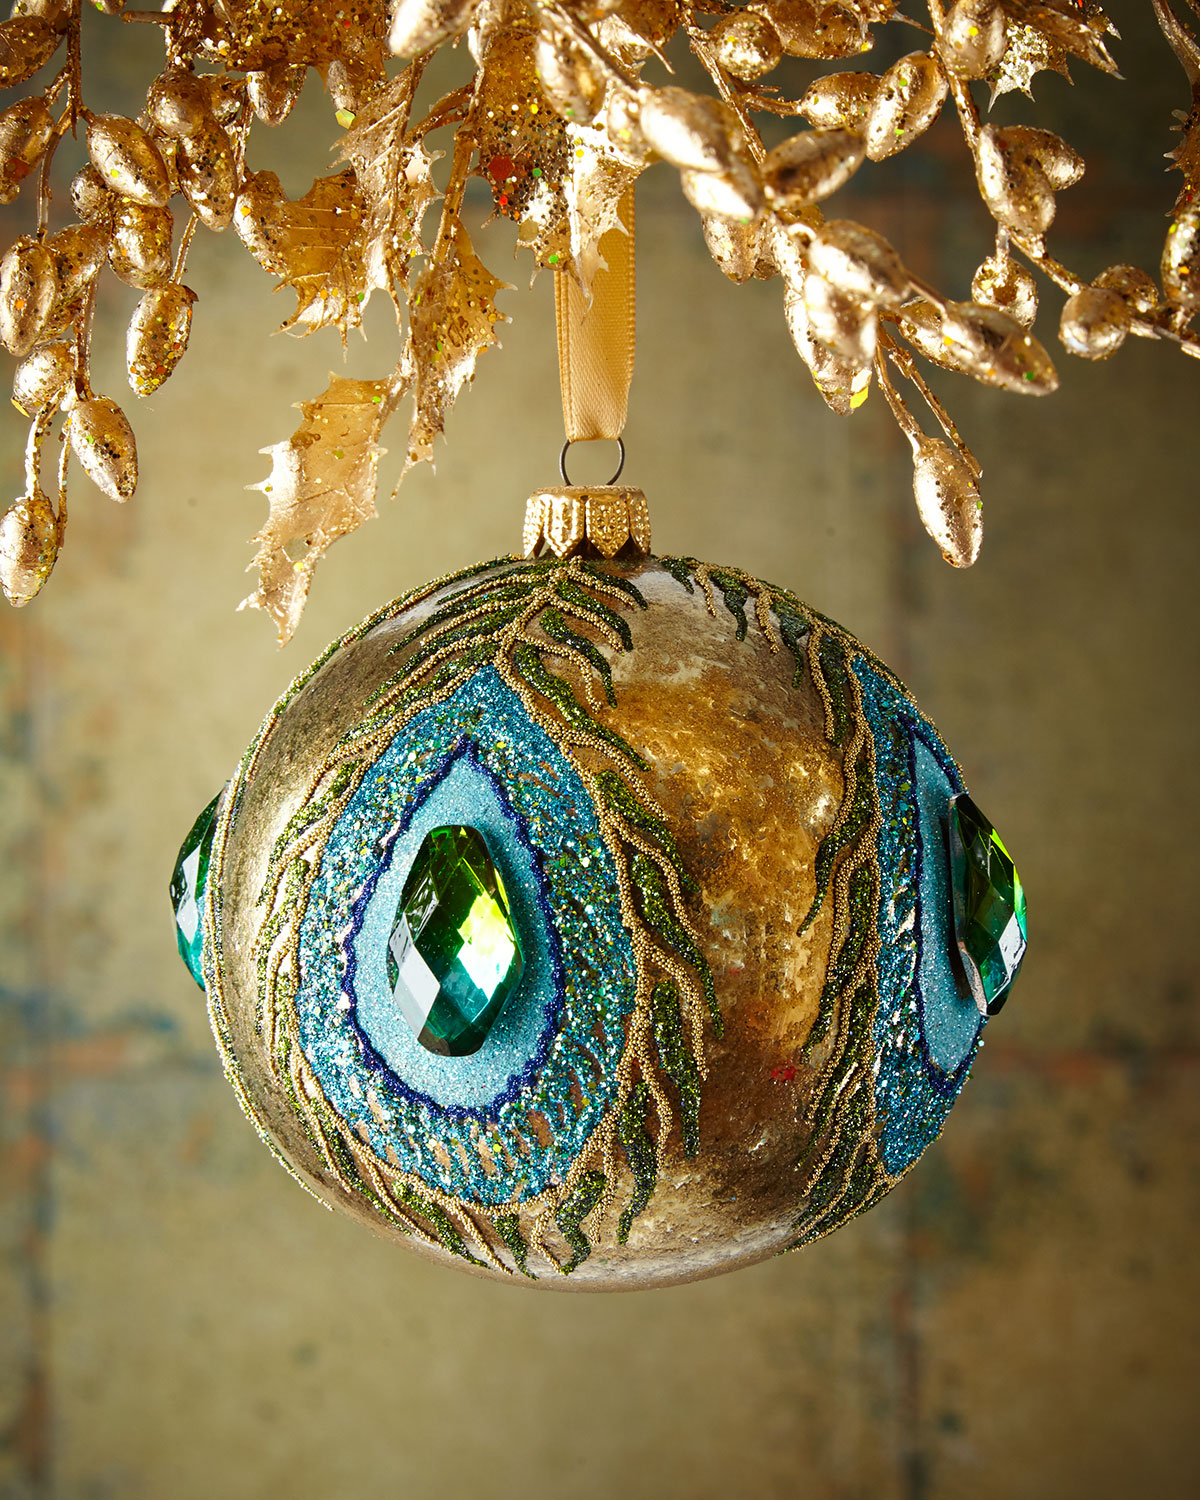 Gold Glassy Peacock Glass Ball Christmas Ornament